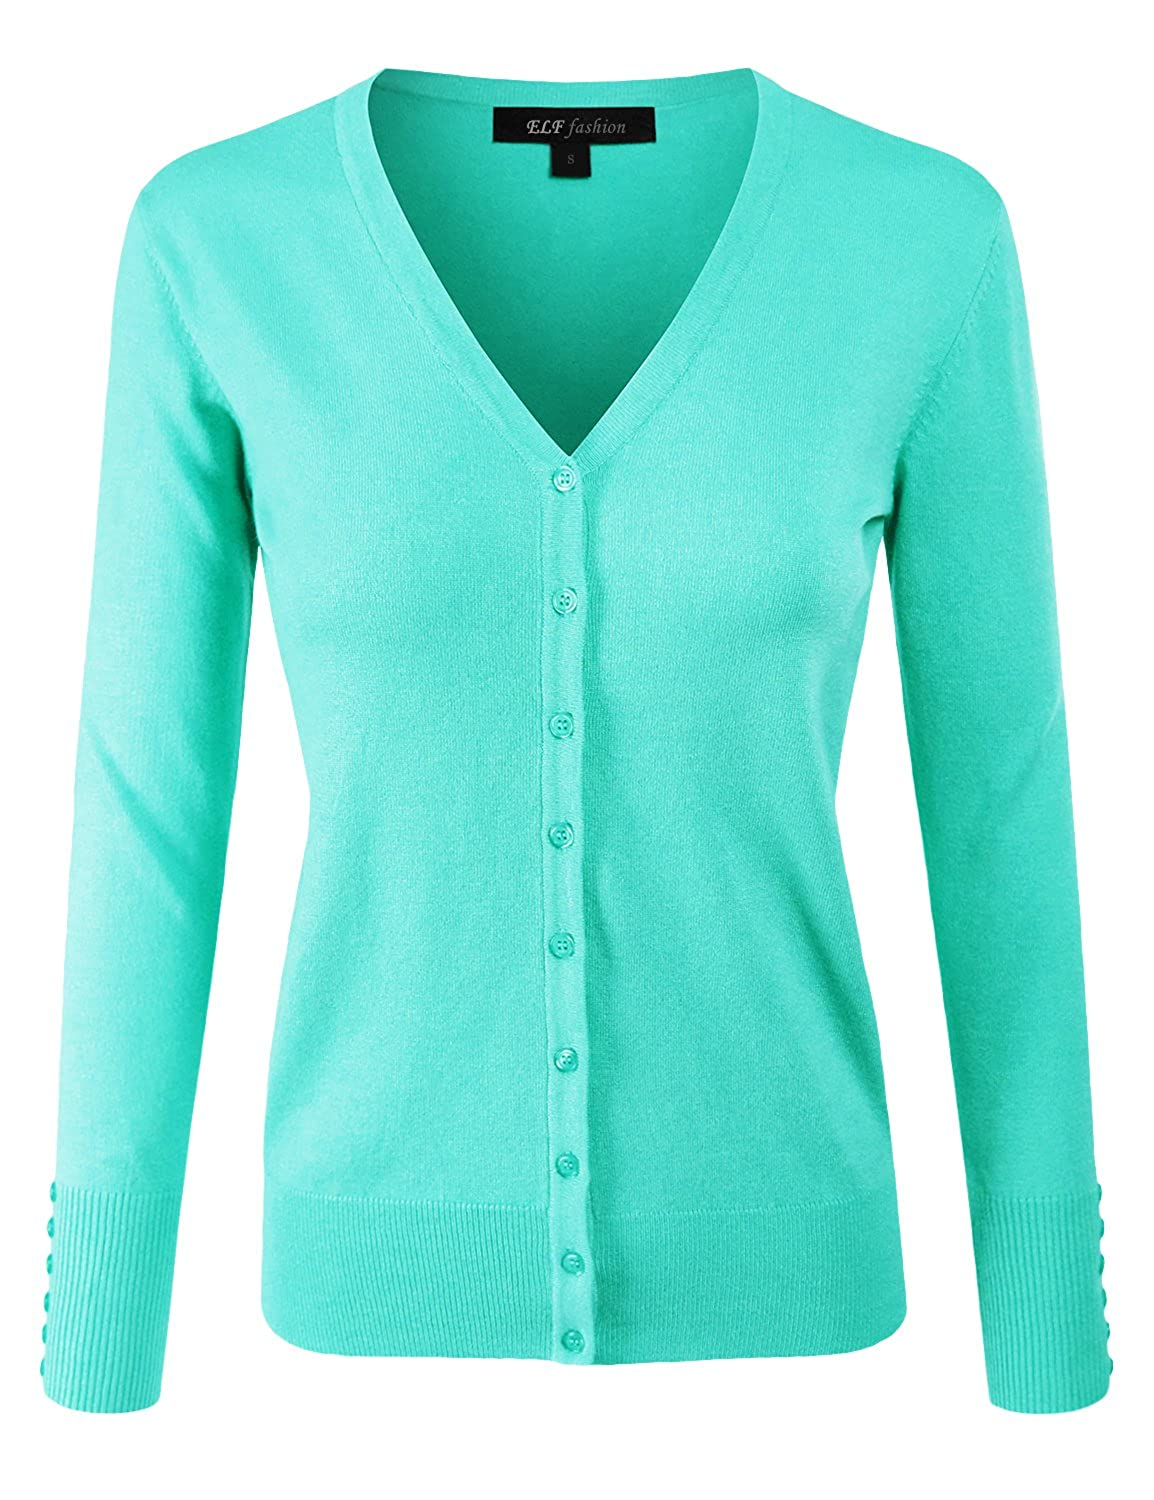 Eftcs2mint2 ELF FASHION Women Top Long Sleeve Button VNeck Cardigan Sweater